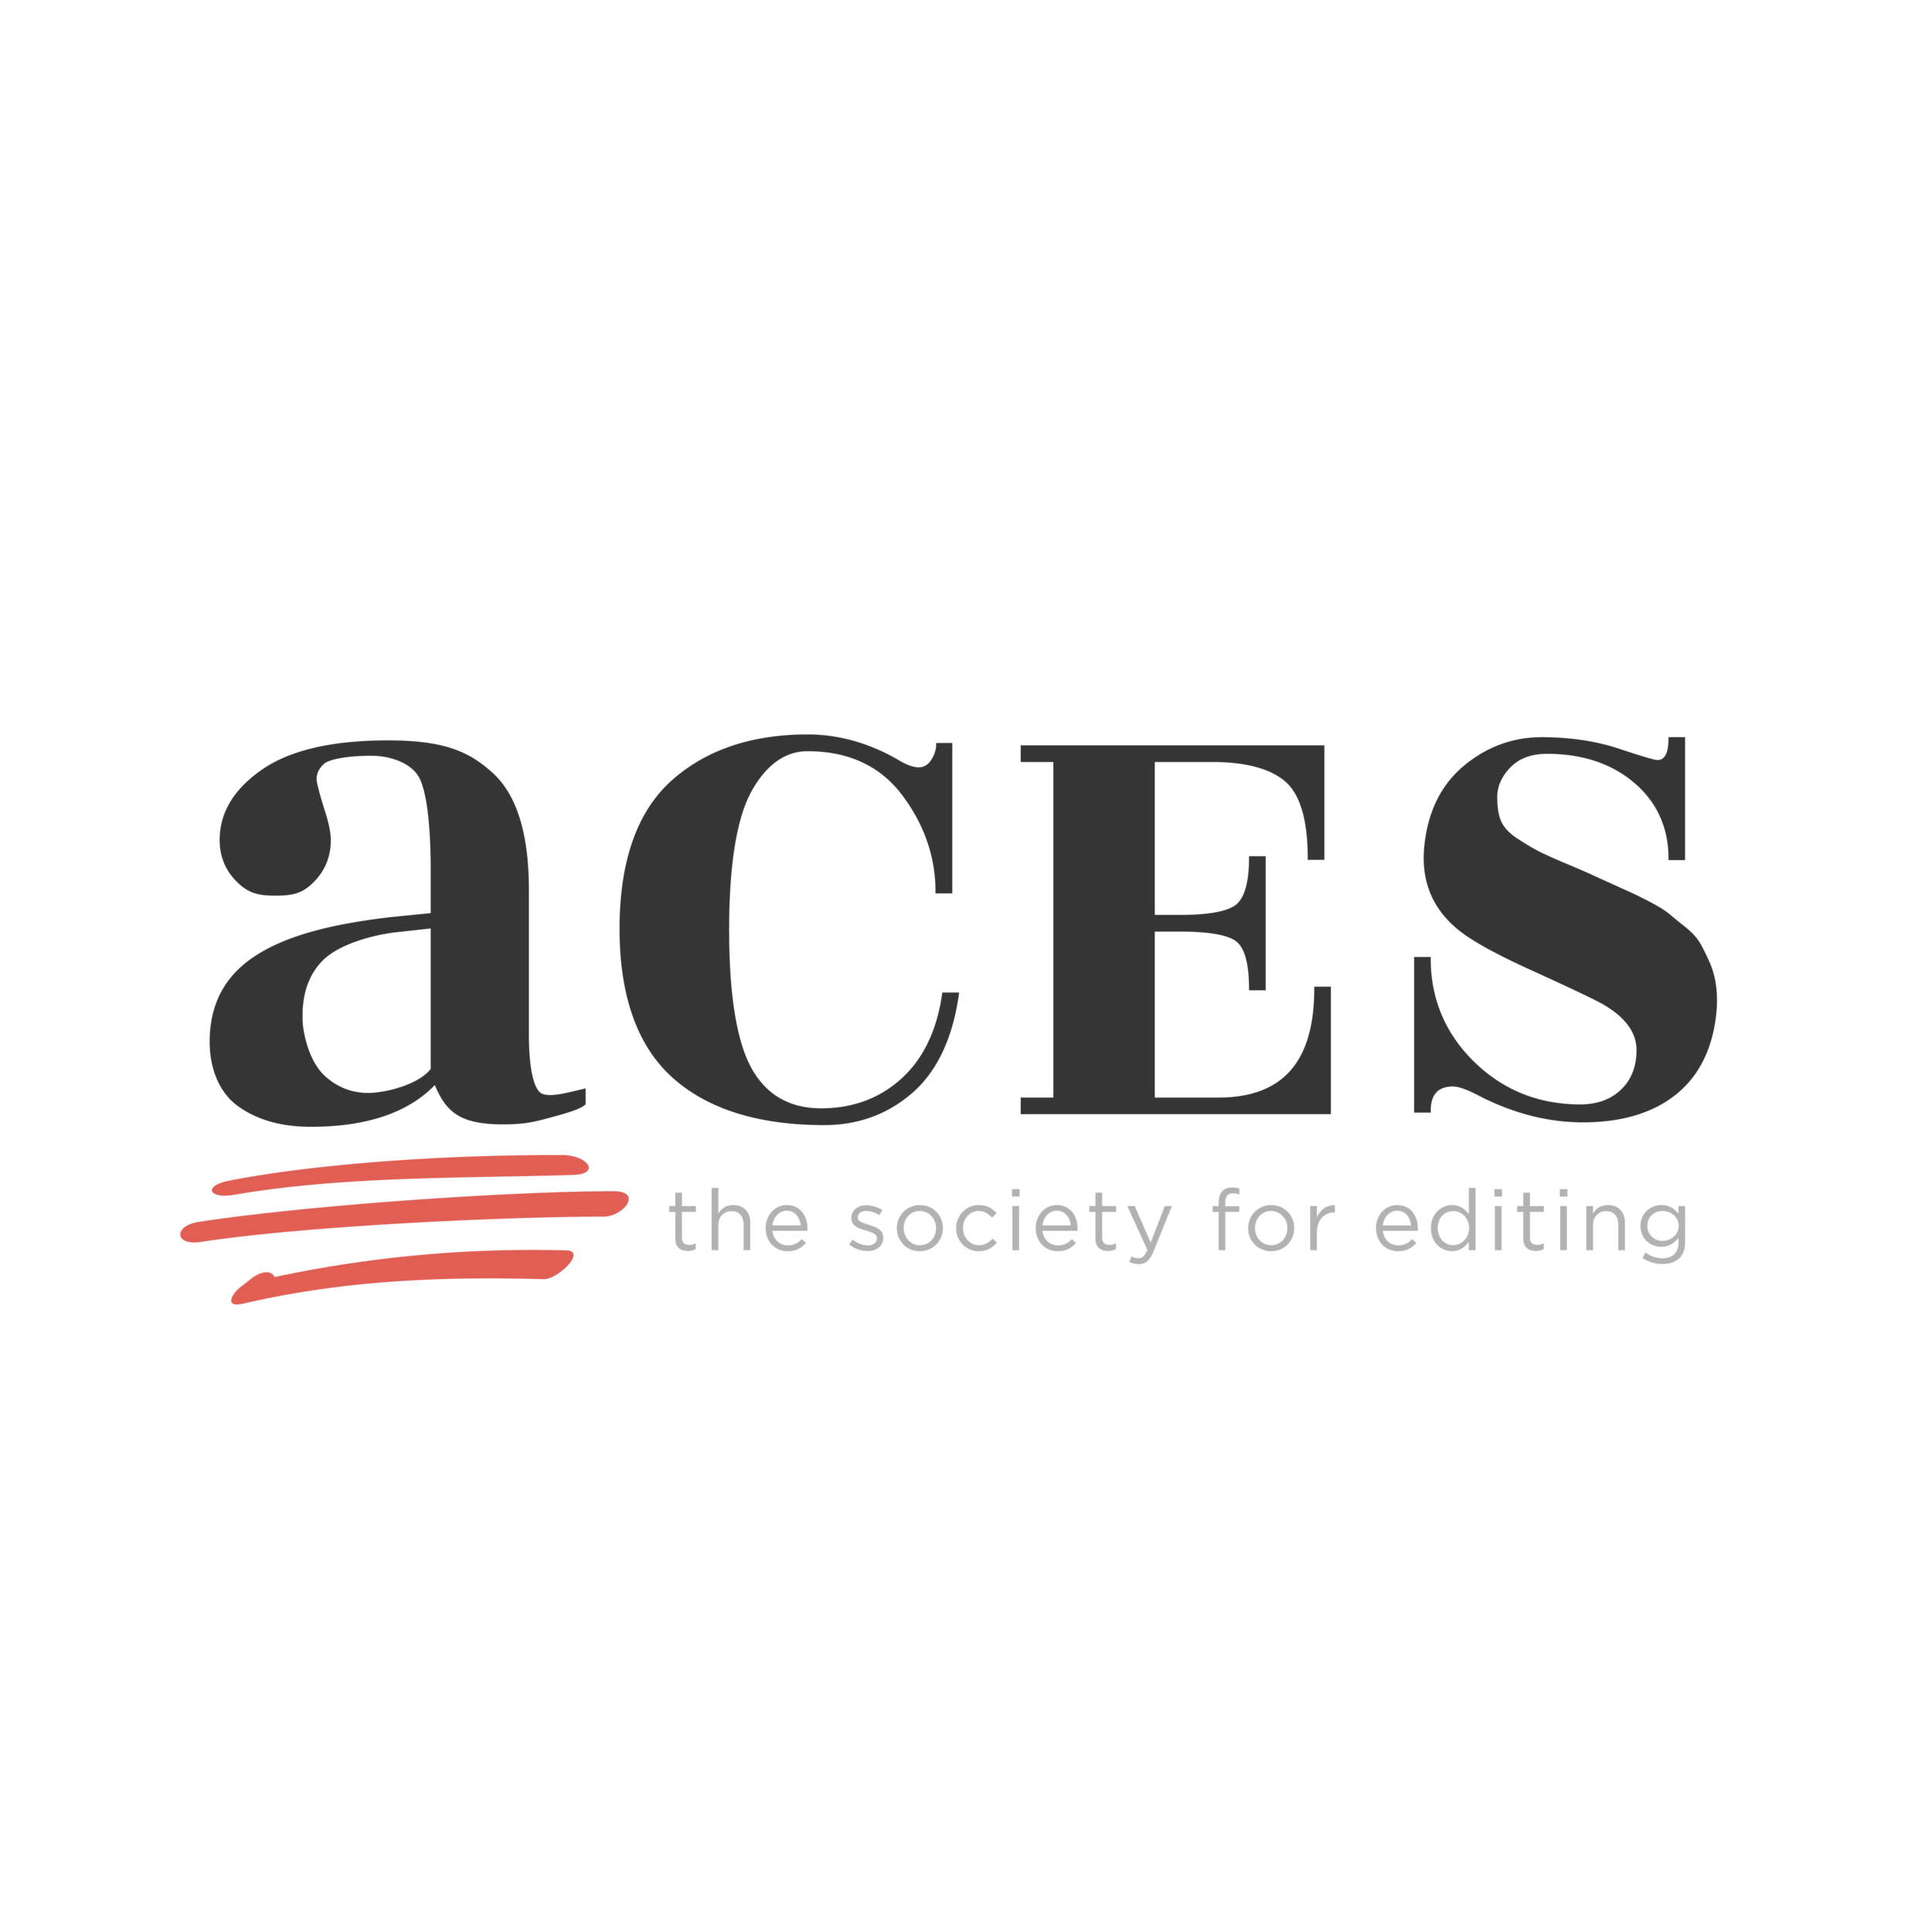 ACES: The Society for Editing logo